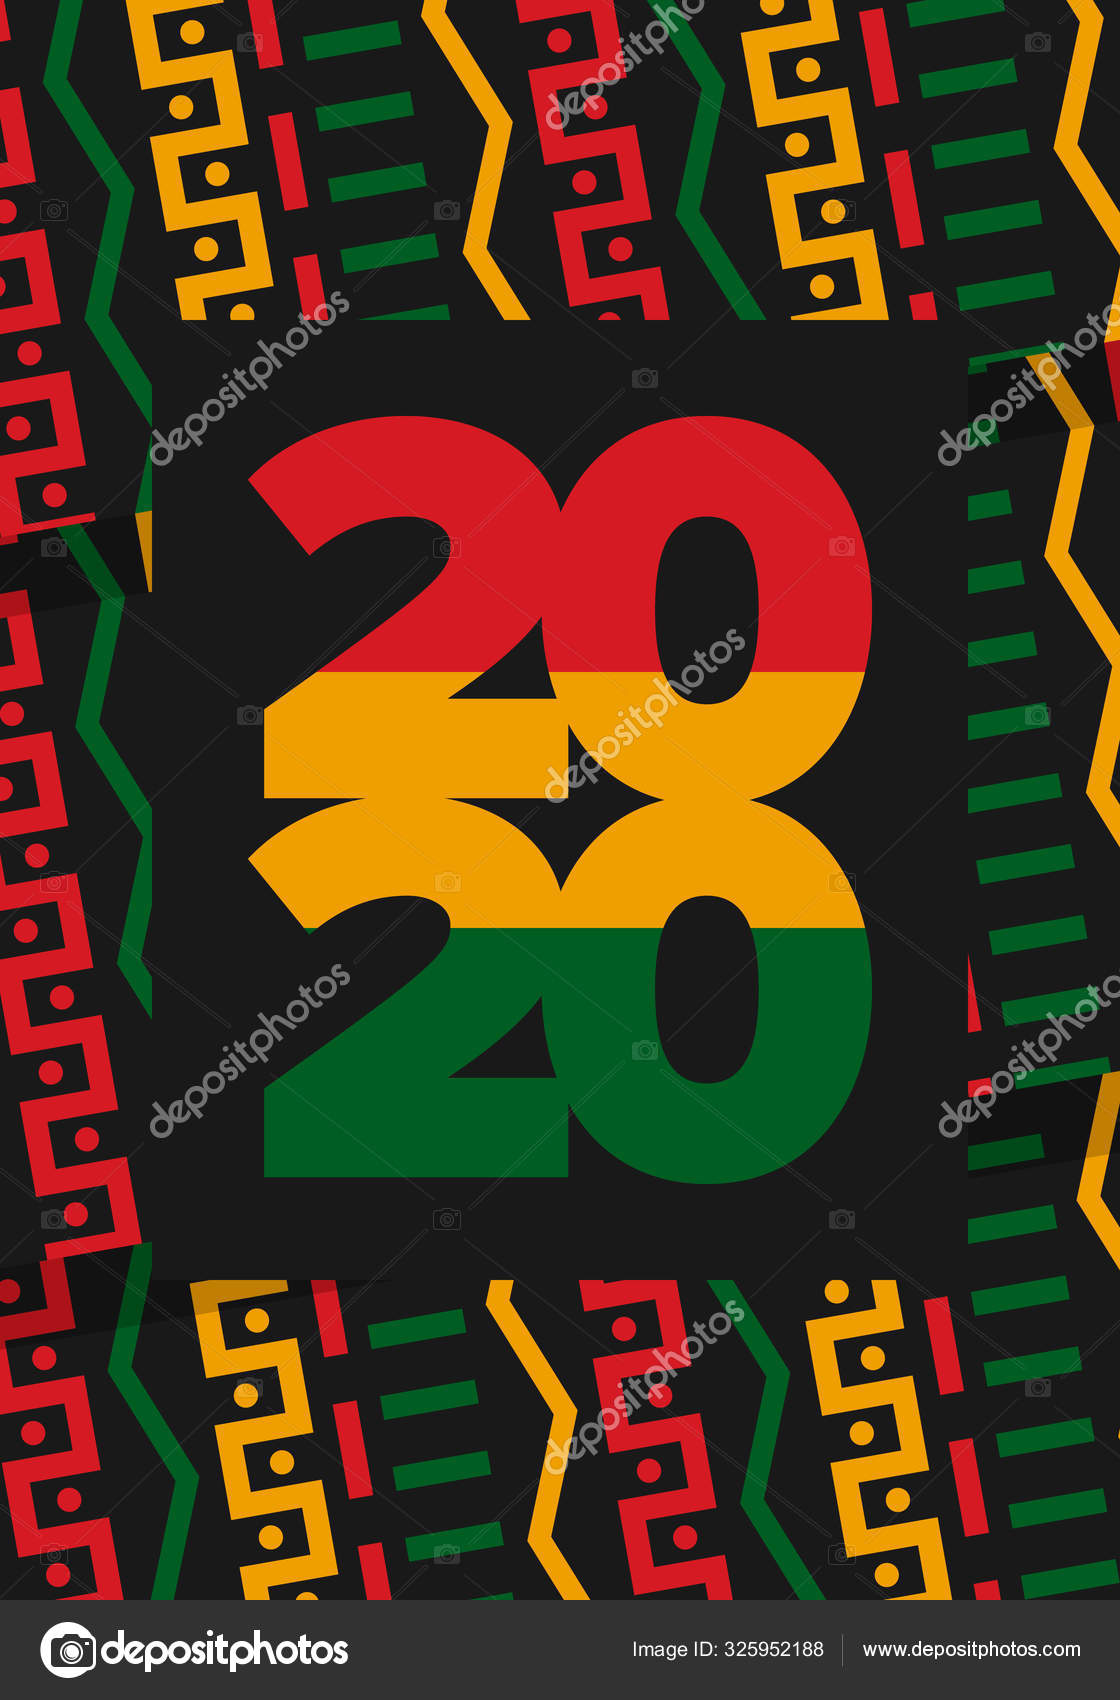 Black History Month African American History Celebrated Annual February United Stock Vector C Scoutori 325952188